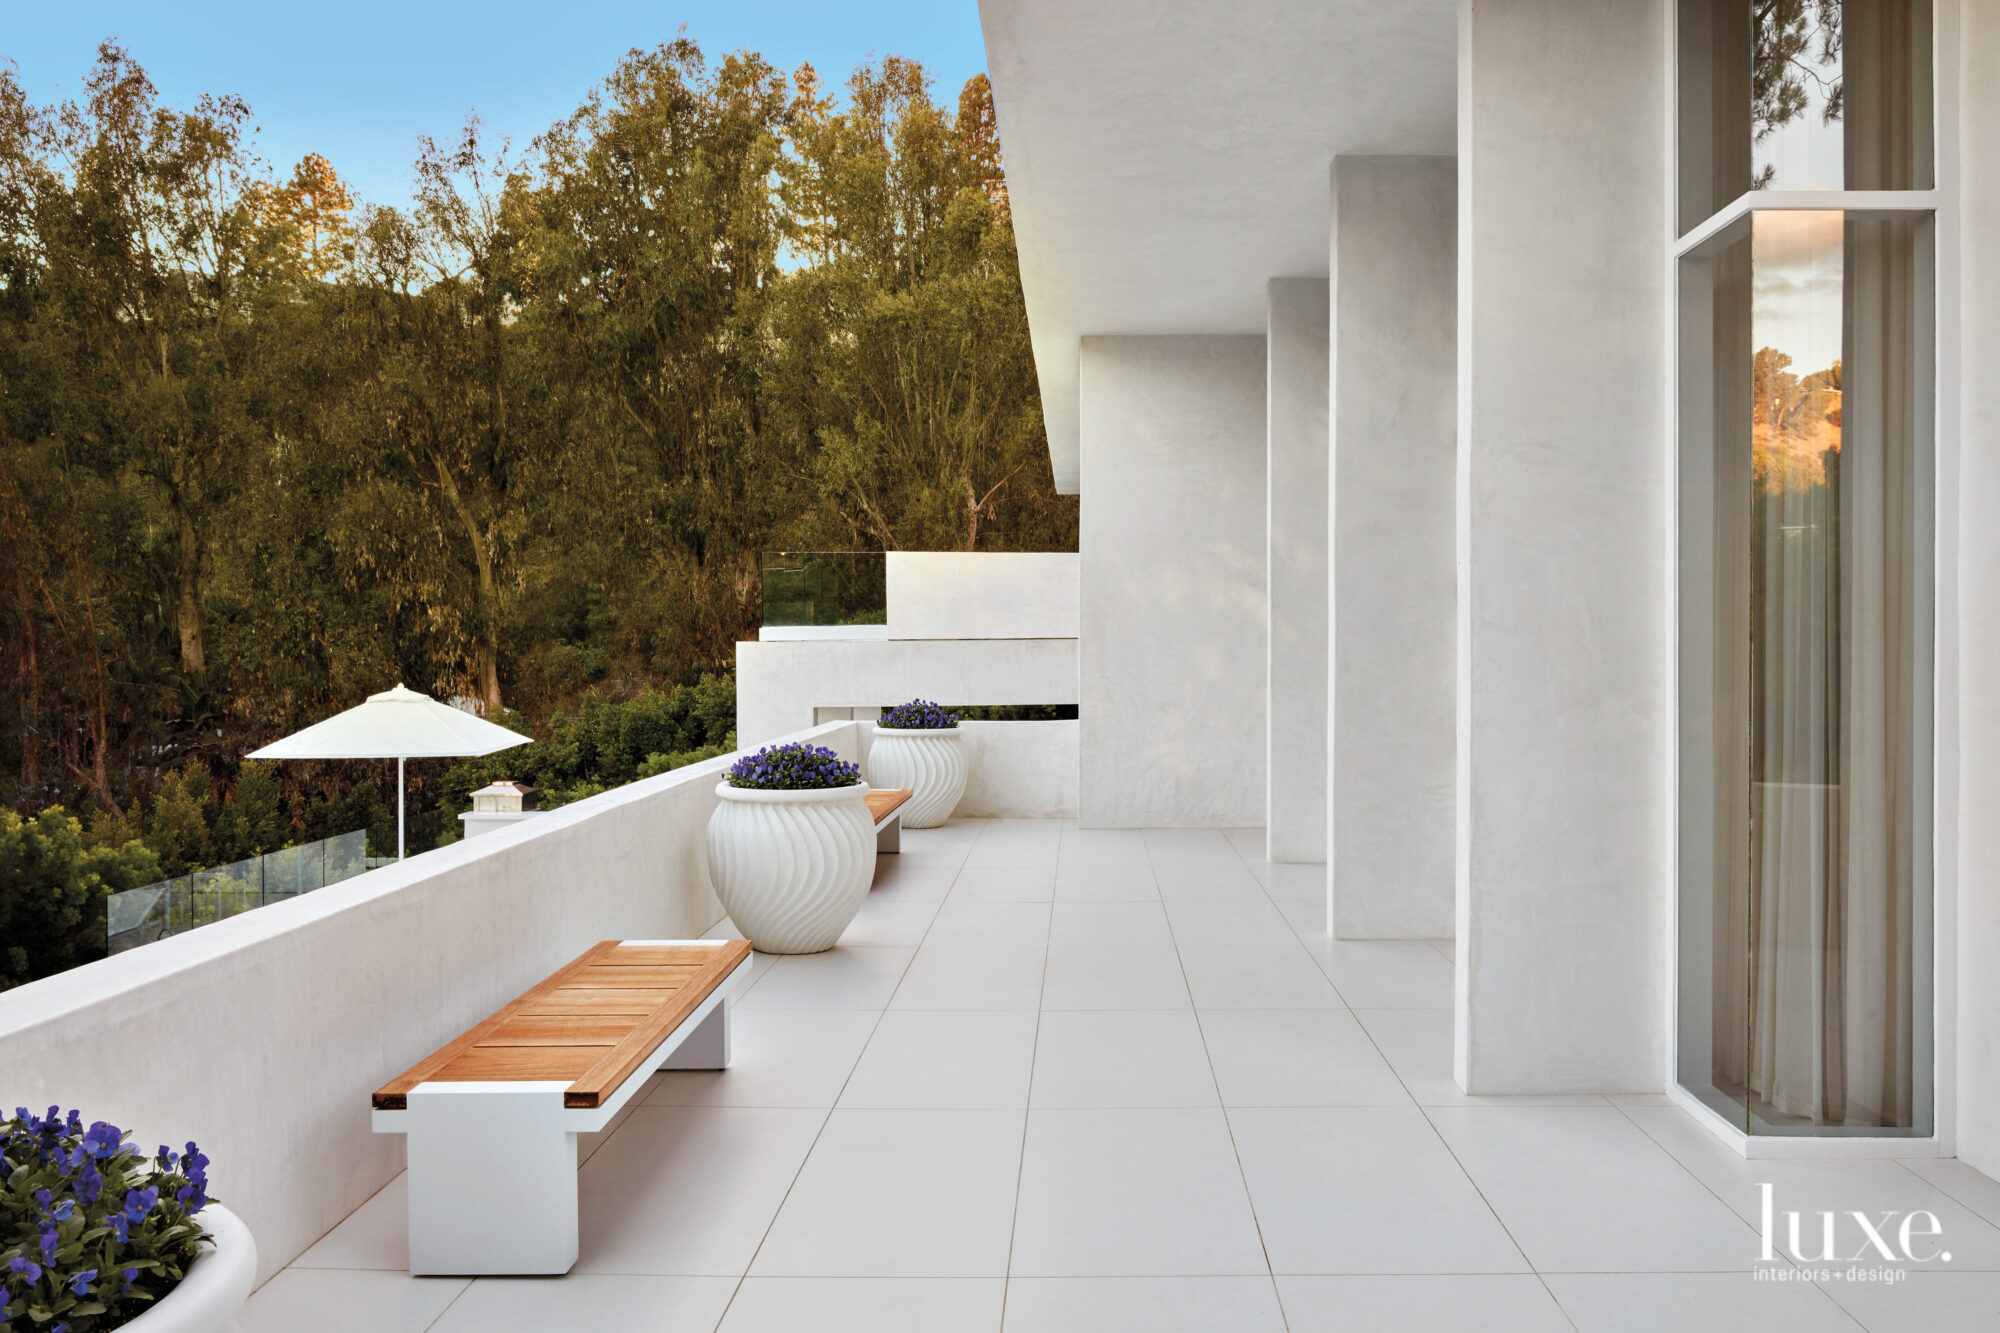 Exterior terrace shot with bench...